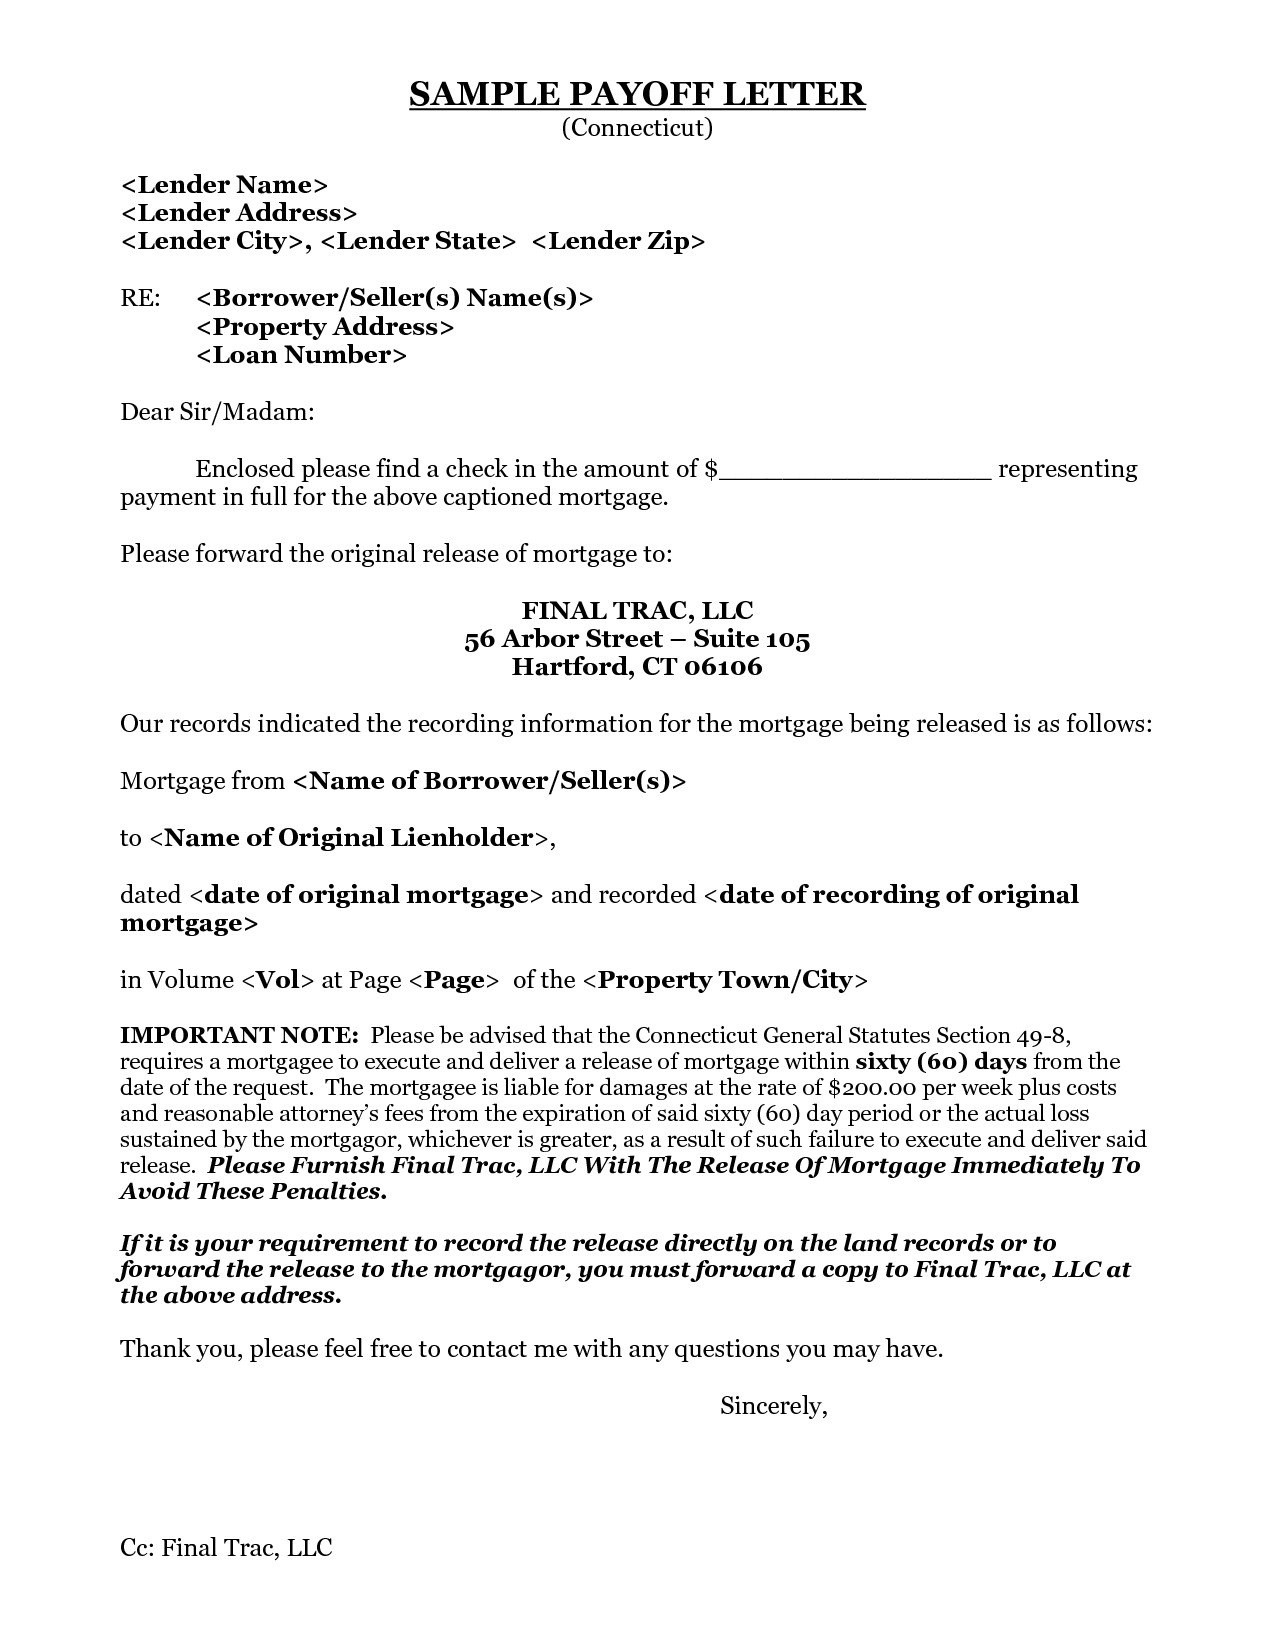 mortgage loan payoff letter template example-Inspiration 9 Best Sample Loan Payoff Letter form Loan Payoff New 8 Payoff Statement Template 3-e